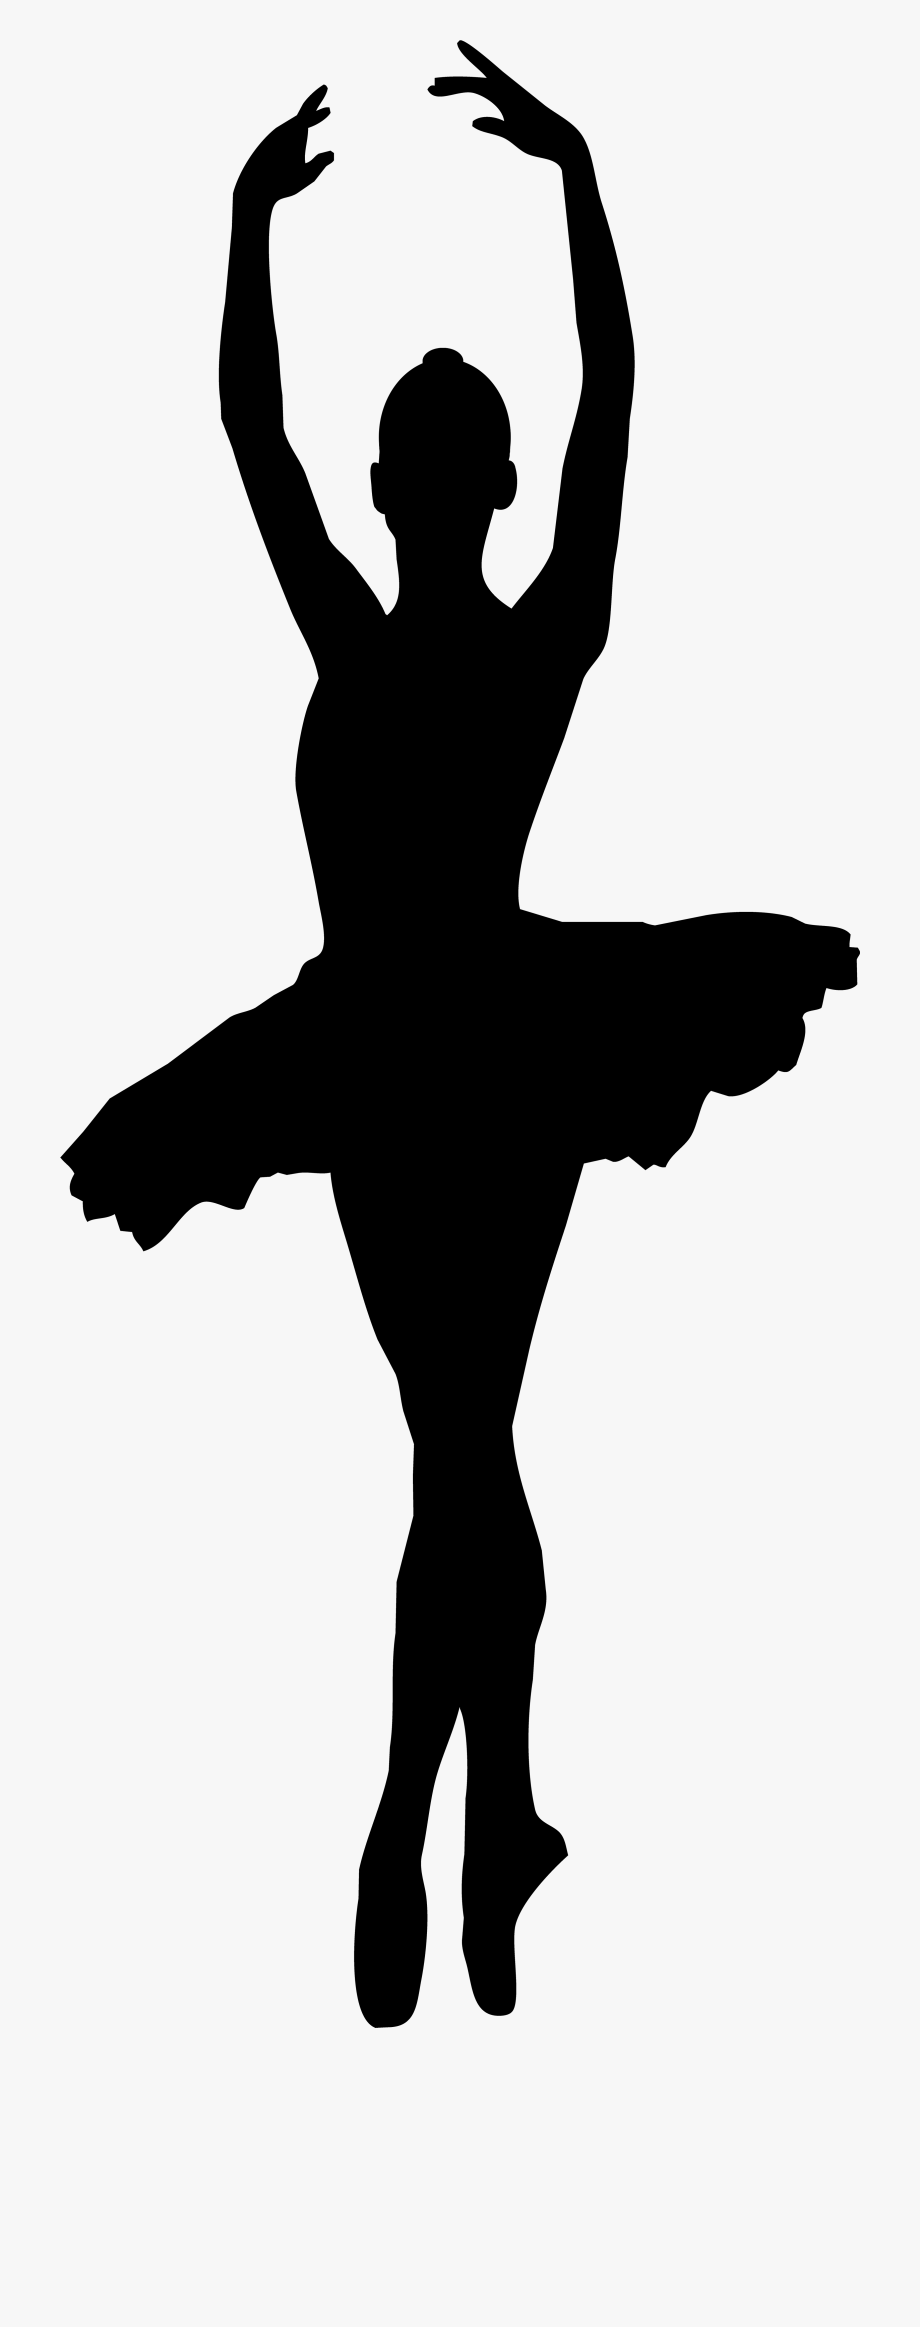 Banner Library Library Dancer Clipart Silhouette.